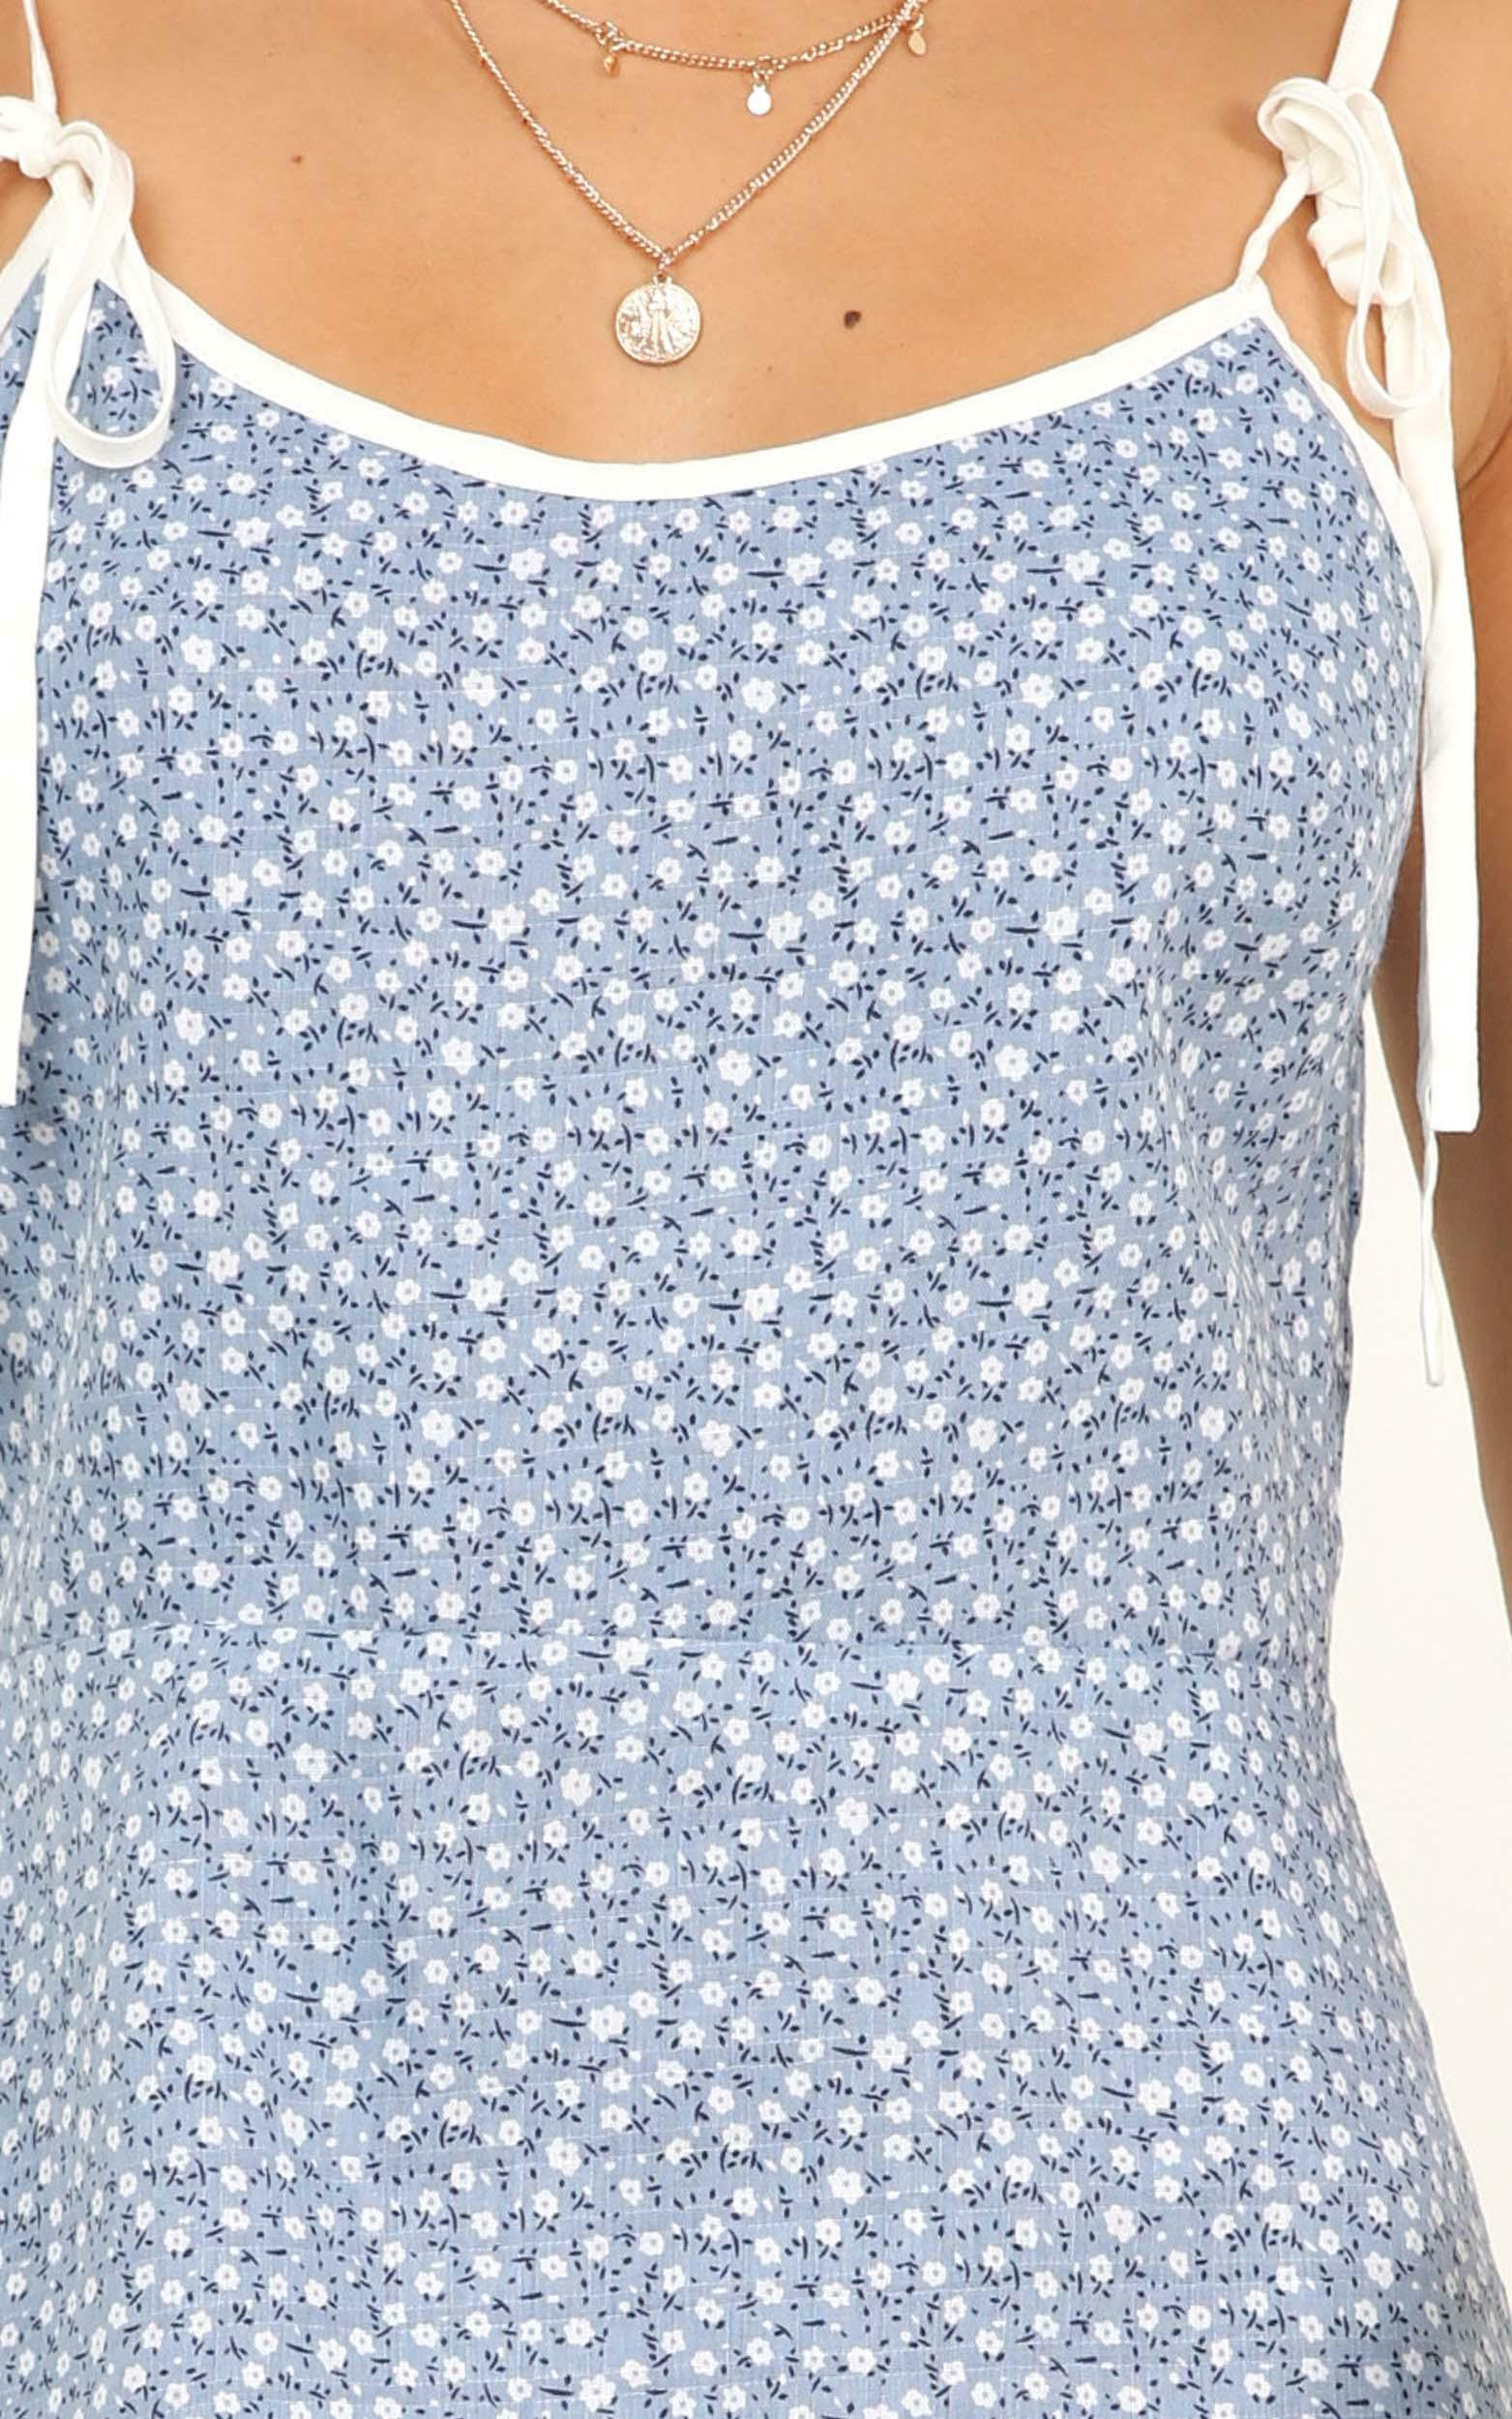 Blushing Lady Dress in blue floral - 18 (XXXL), Blue, hi-res image number null